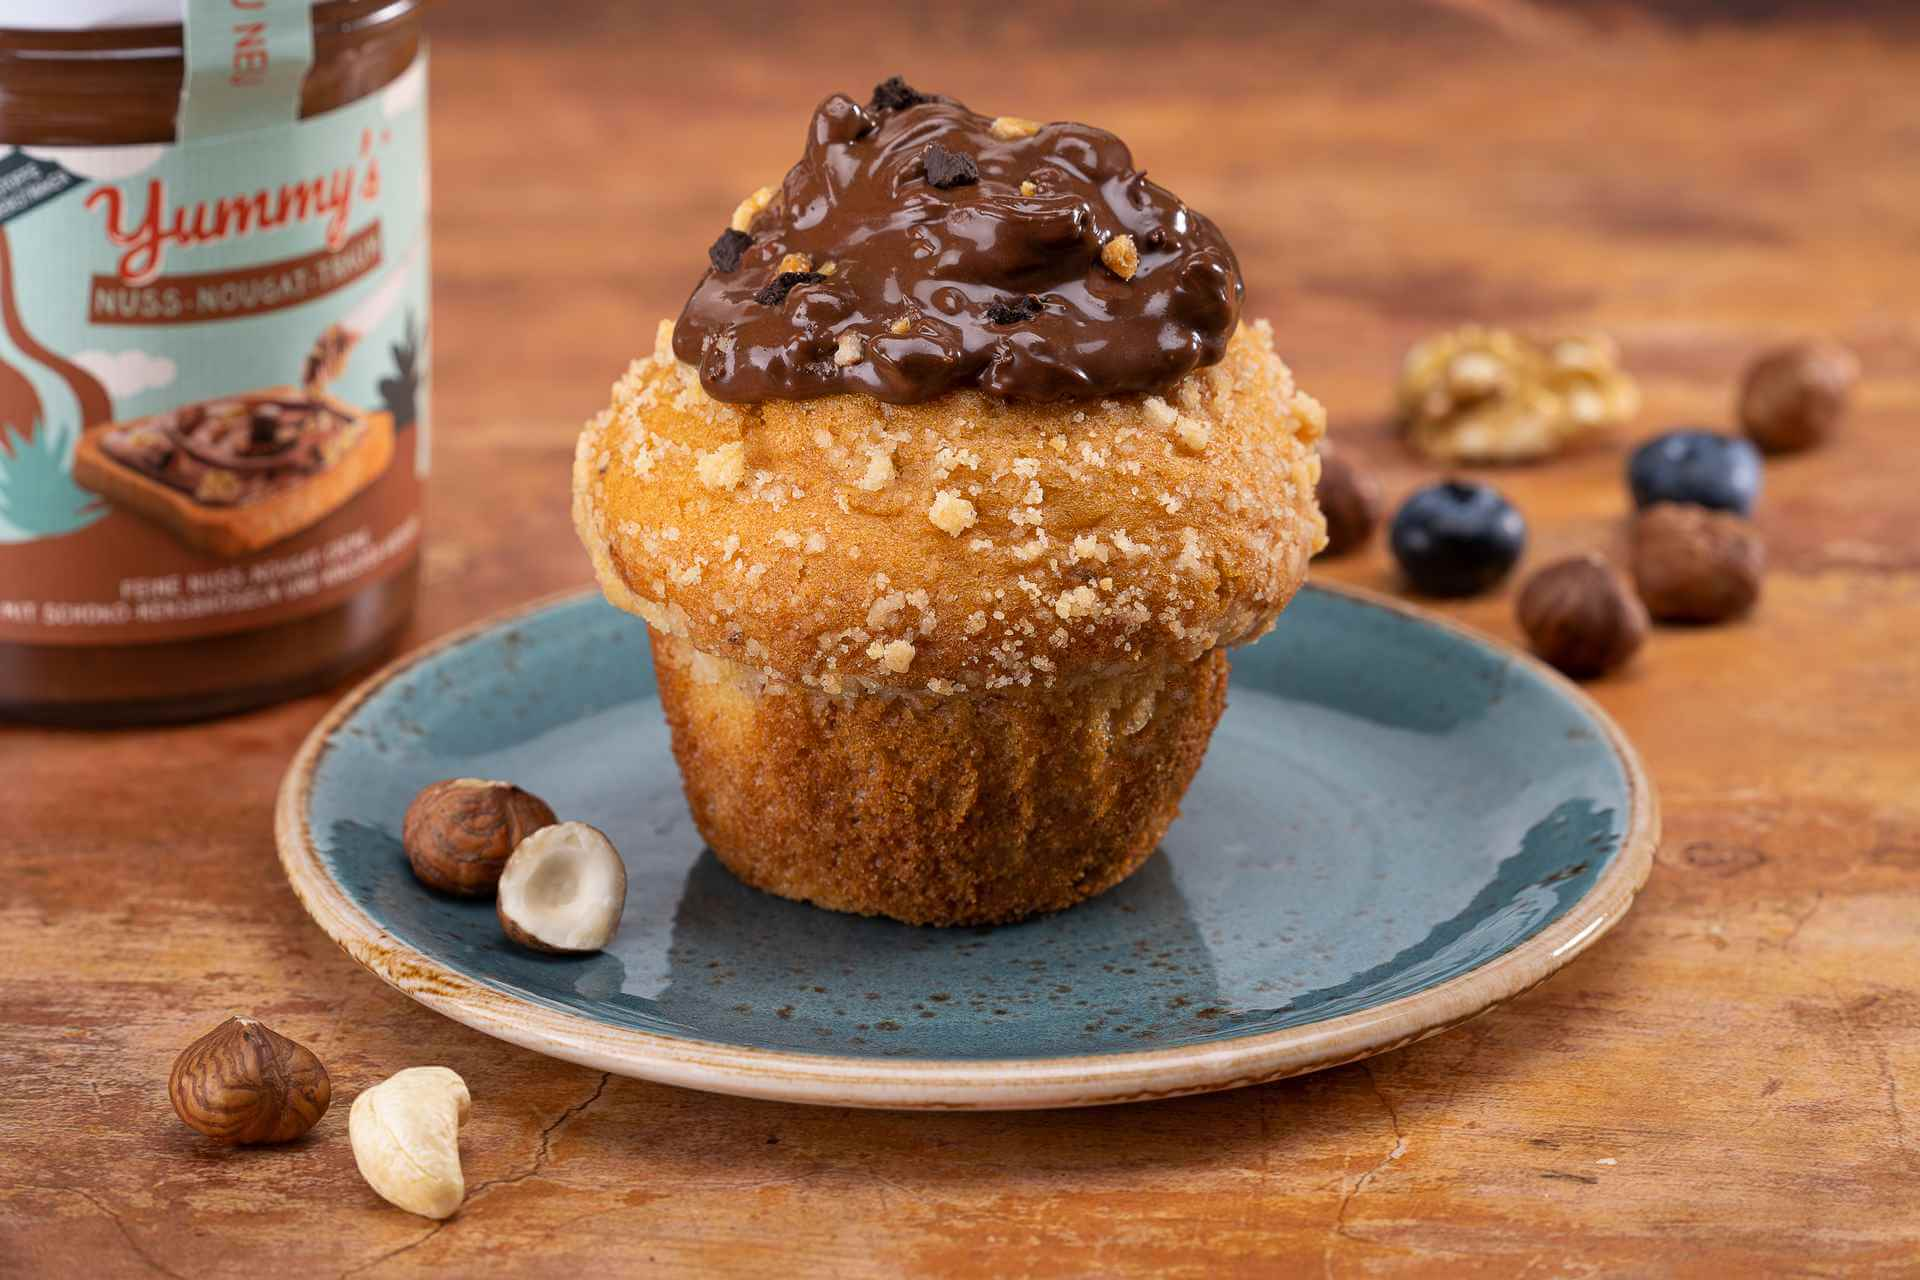 MUFFIN MIT YUMMY'S NUSS-NOUGAT-TOPPING